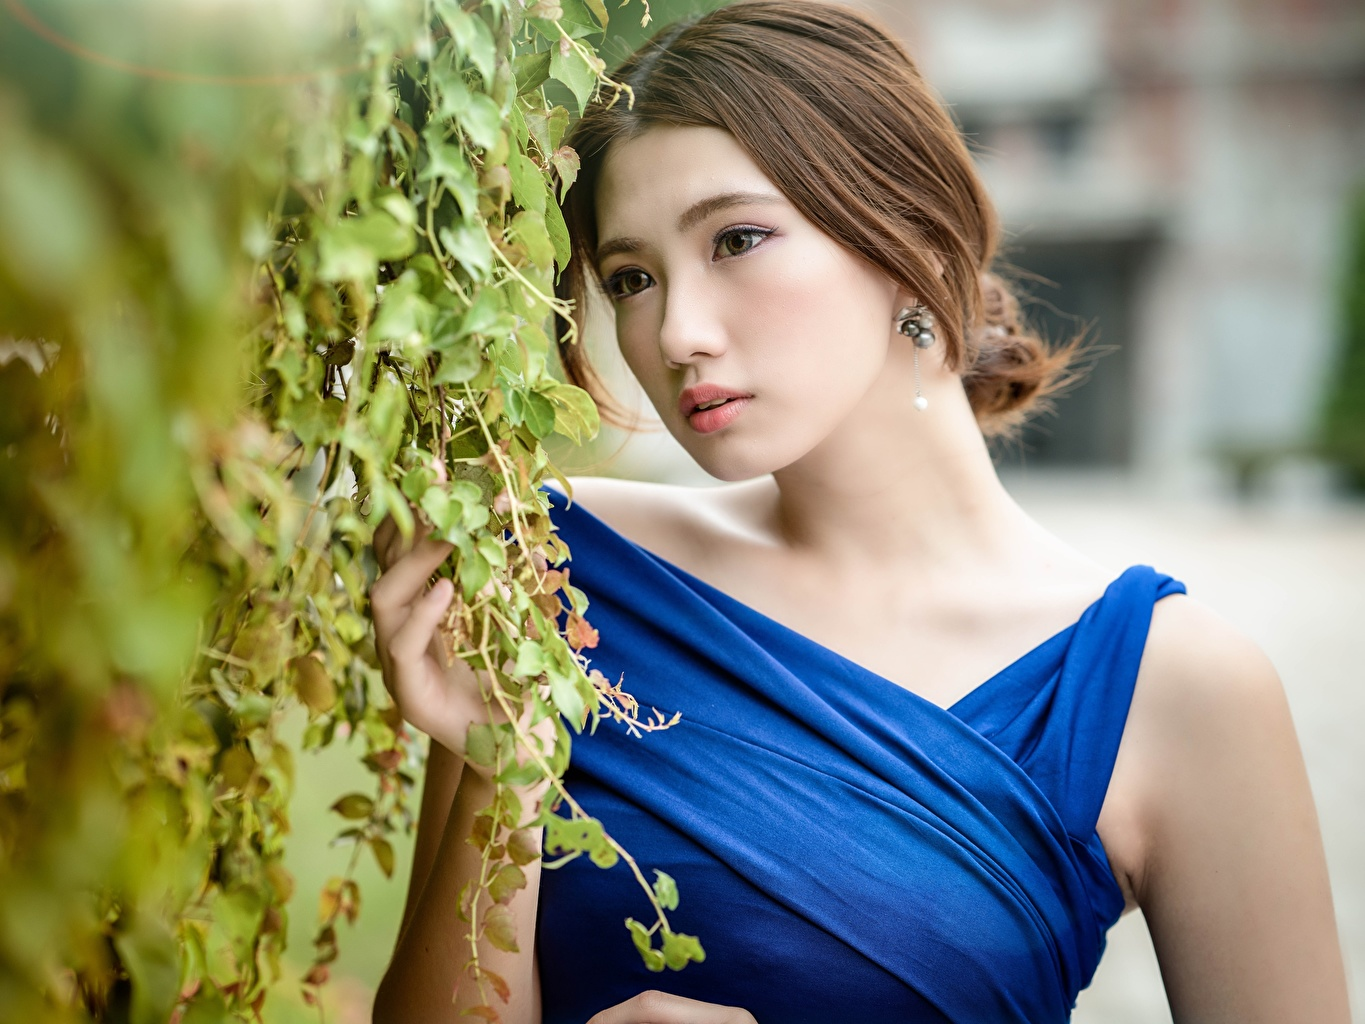 Image Brown haired Bokeh Girls Asiatic Bush Staring blurred background female young woman Asian Glance Shrubs